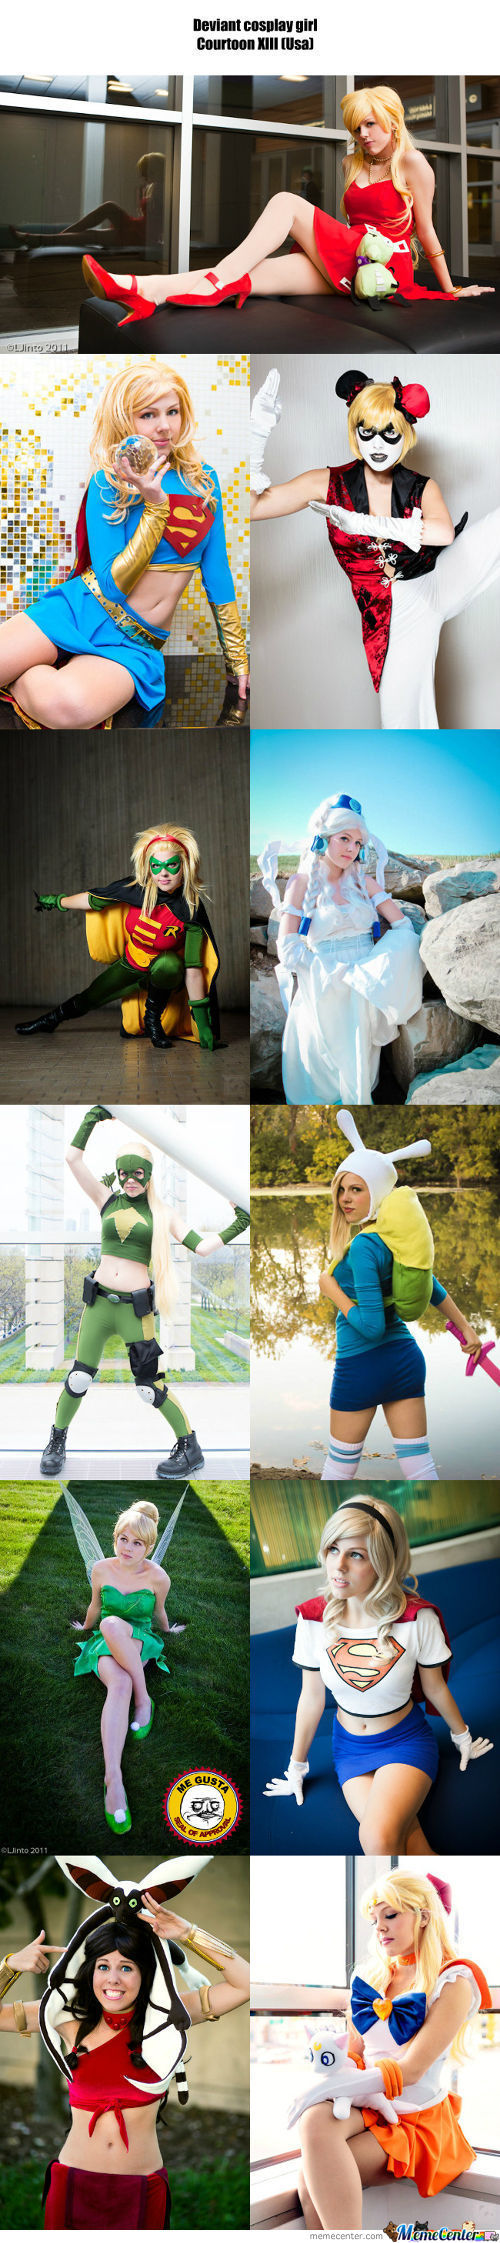 Cosplay Girl 68 : Courtoon Xlll (Usa)